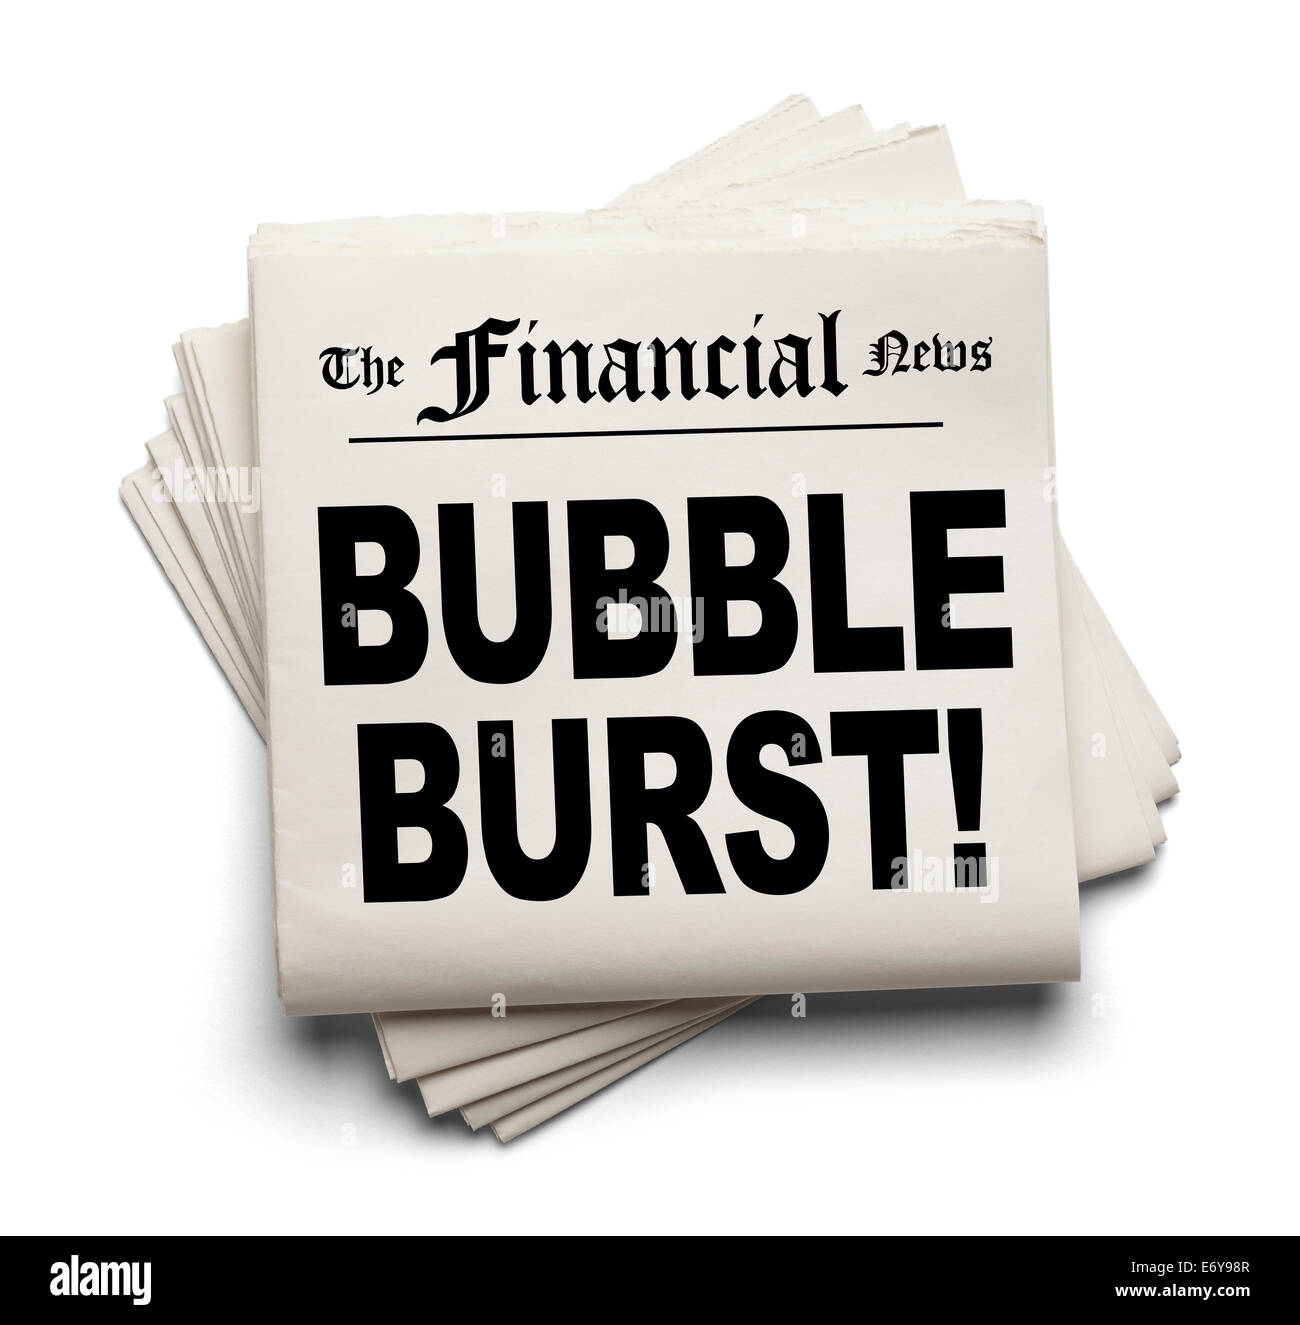 Financial New Paper with Bubble Burst Headline Isolated on White Background. - Stock Image